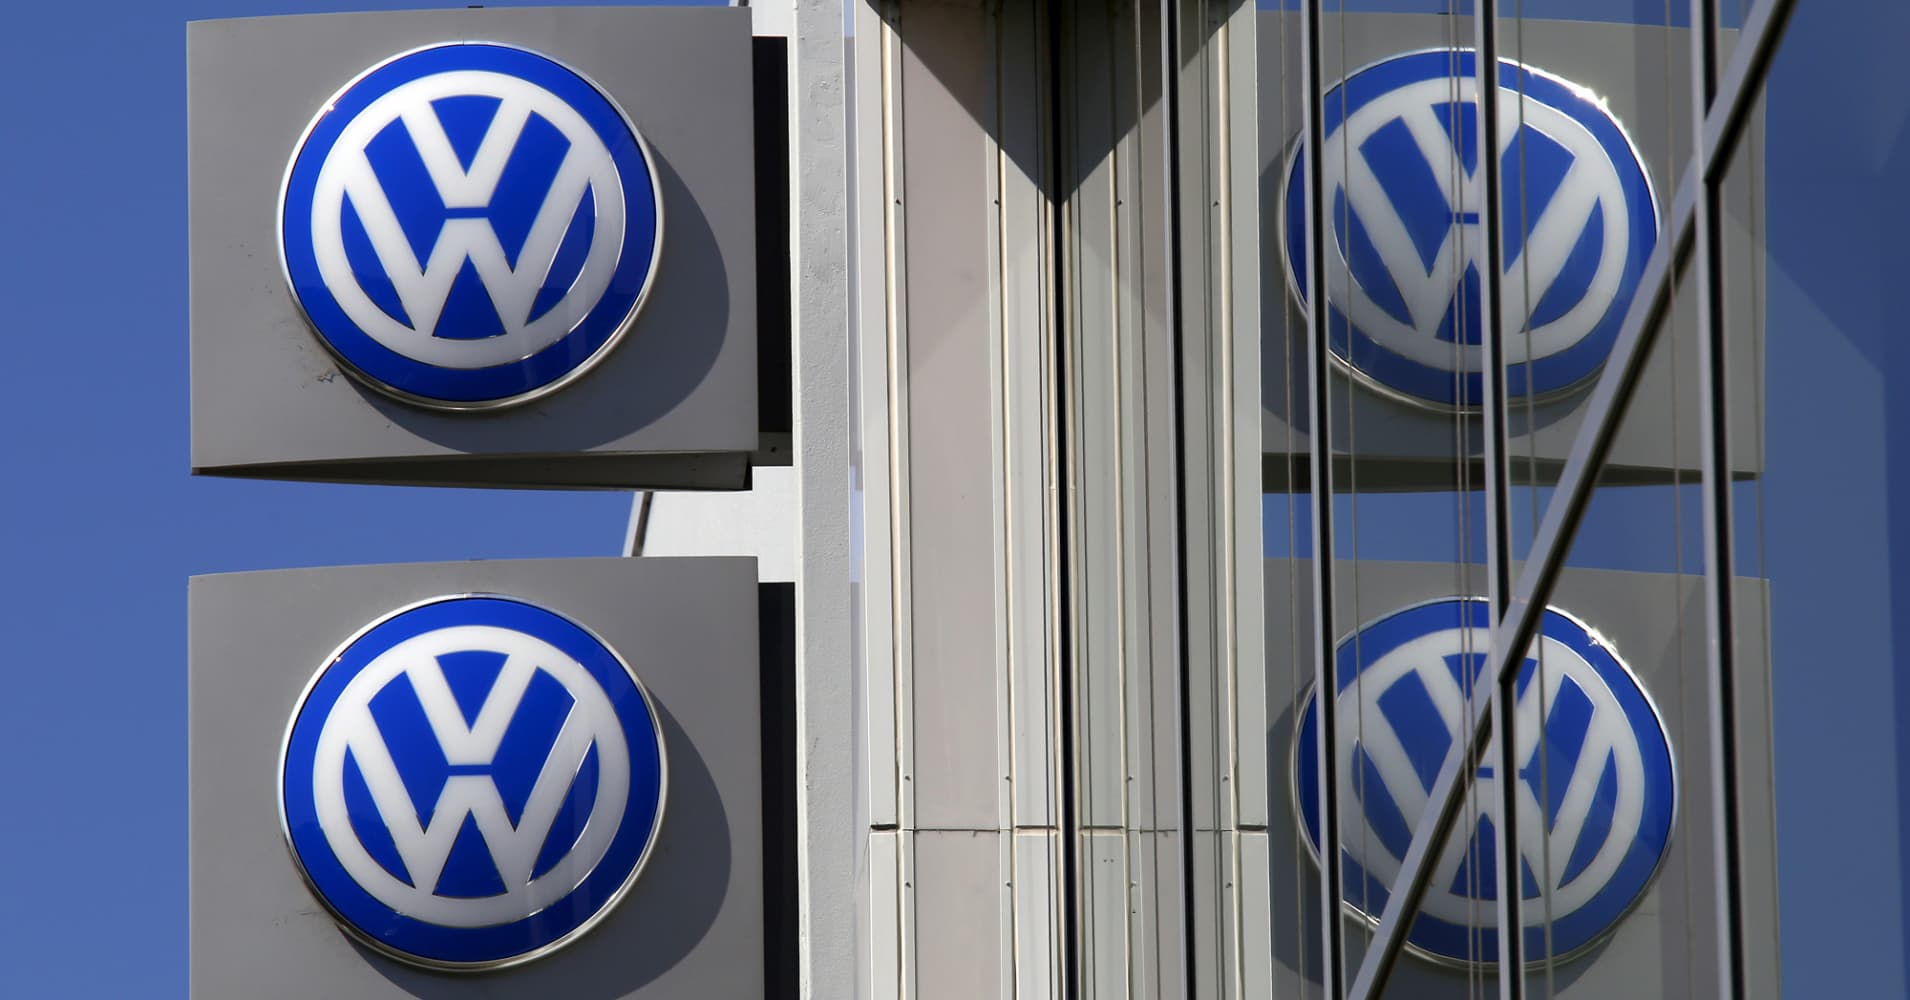 SEC alleges Volkswagen 'perpetrated a massive fraud' and repeatedly lied to US investors